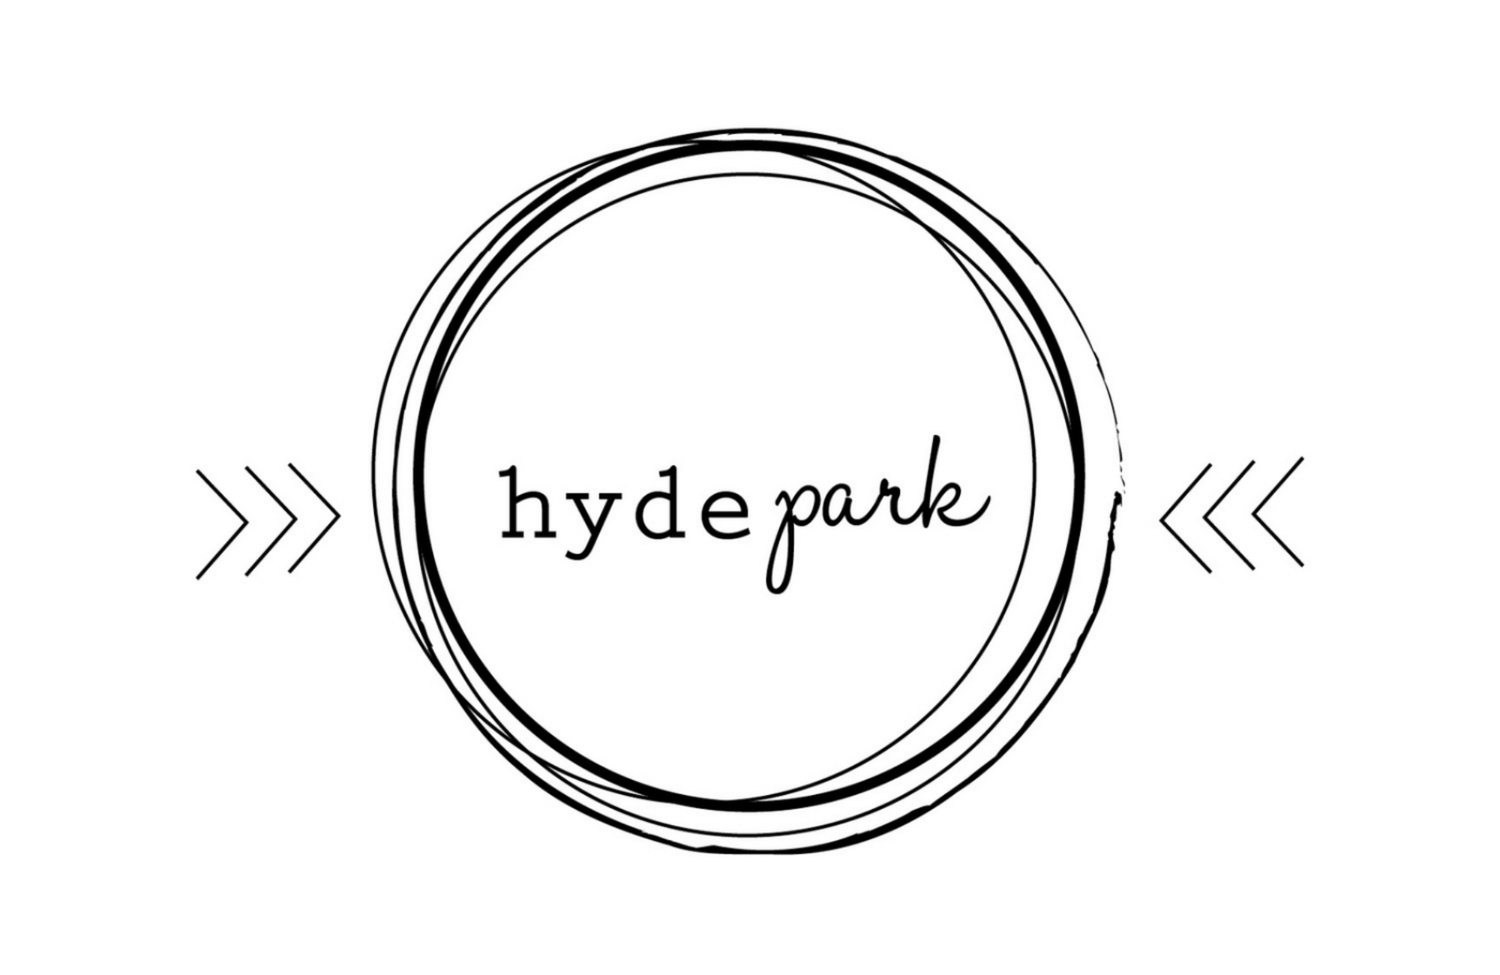 hyde park mke